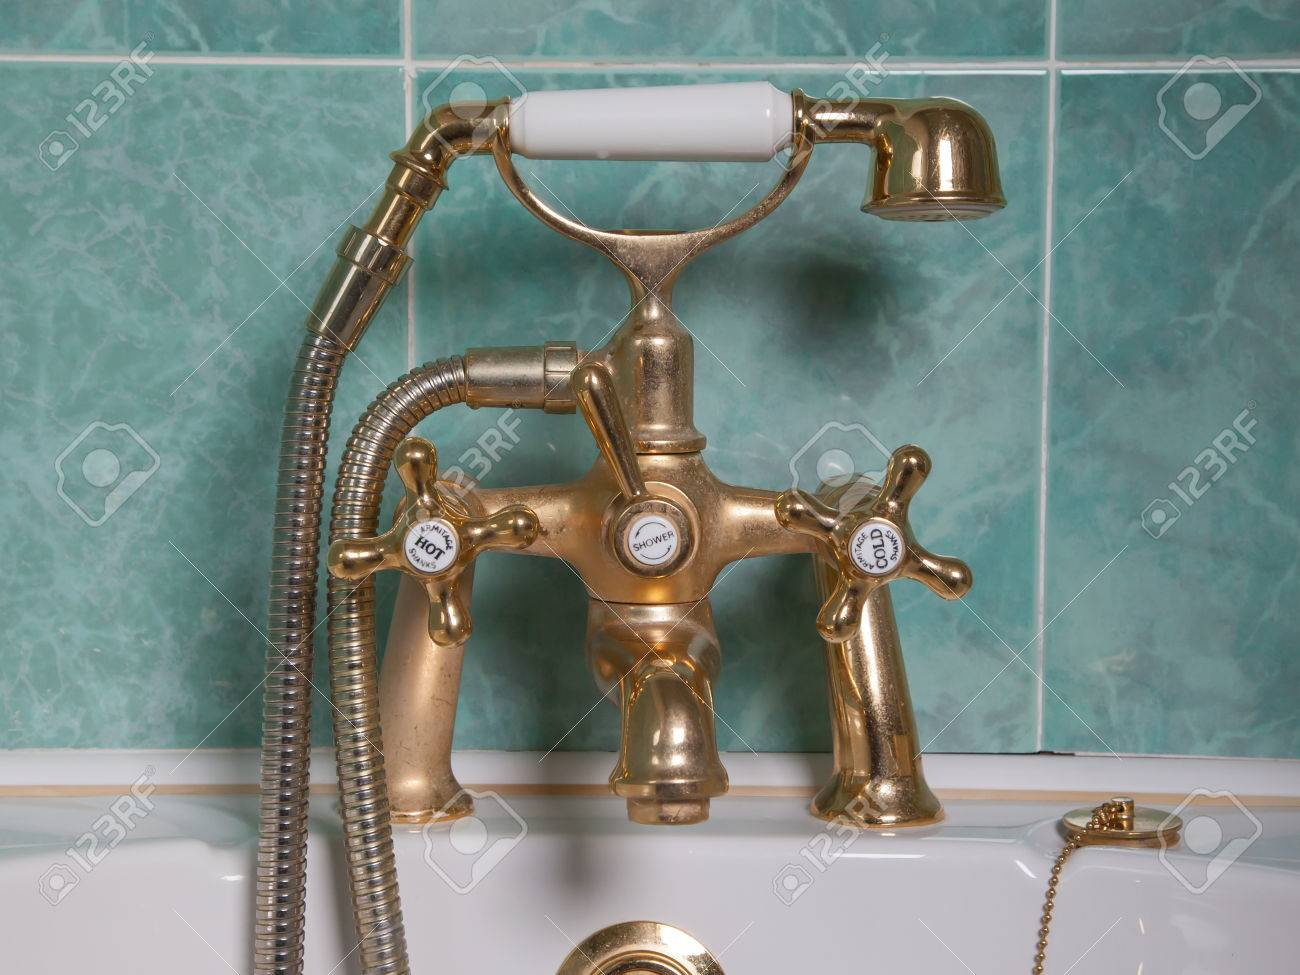 Vintage Bath Taps, Golden Tap With A Green Wall Stock Photo, Picture ...